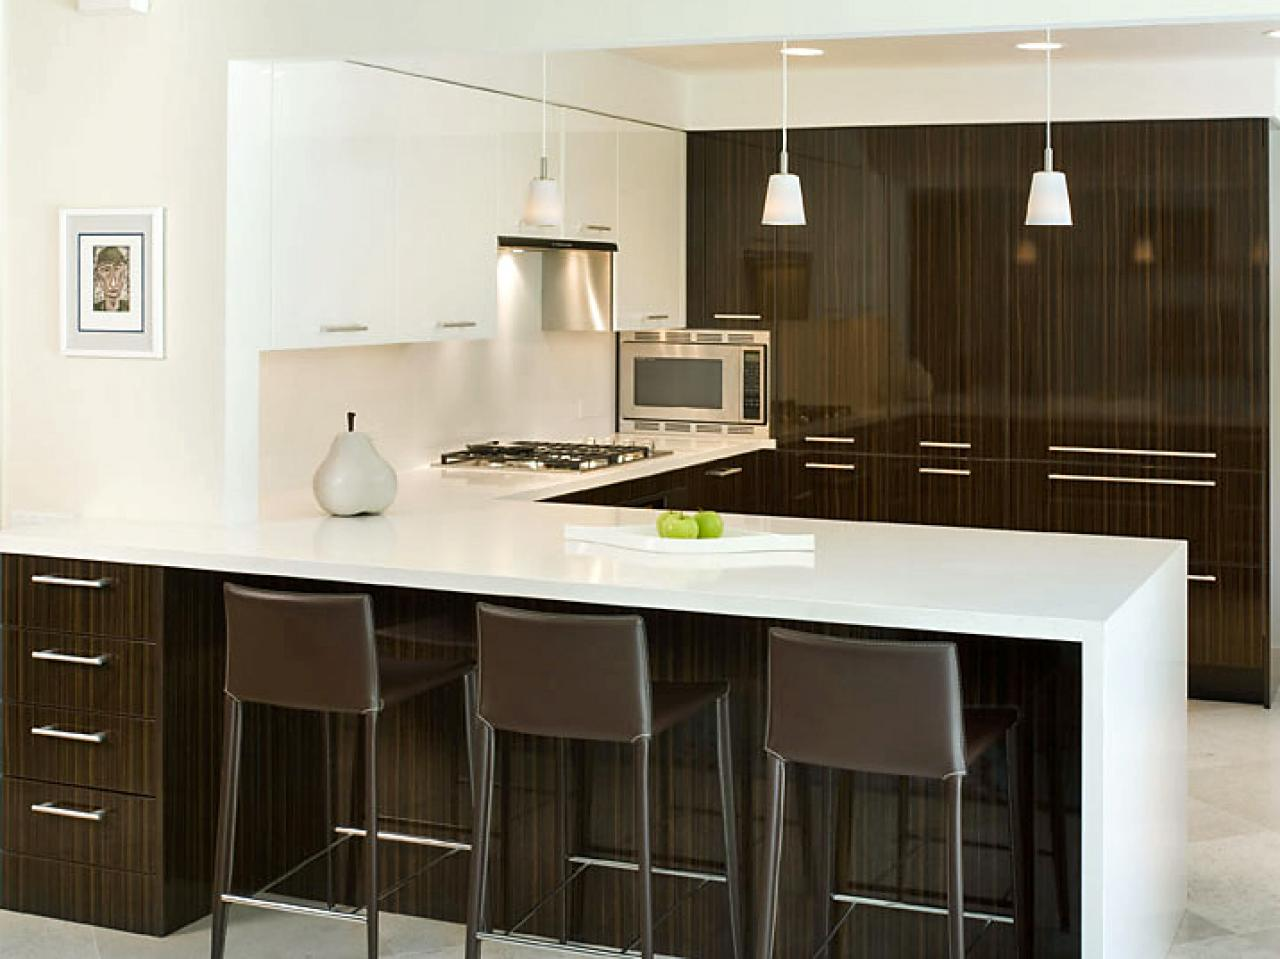 Peninsula Kitchen Design: Pictures, Ideas & Tips From HGTV